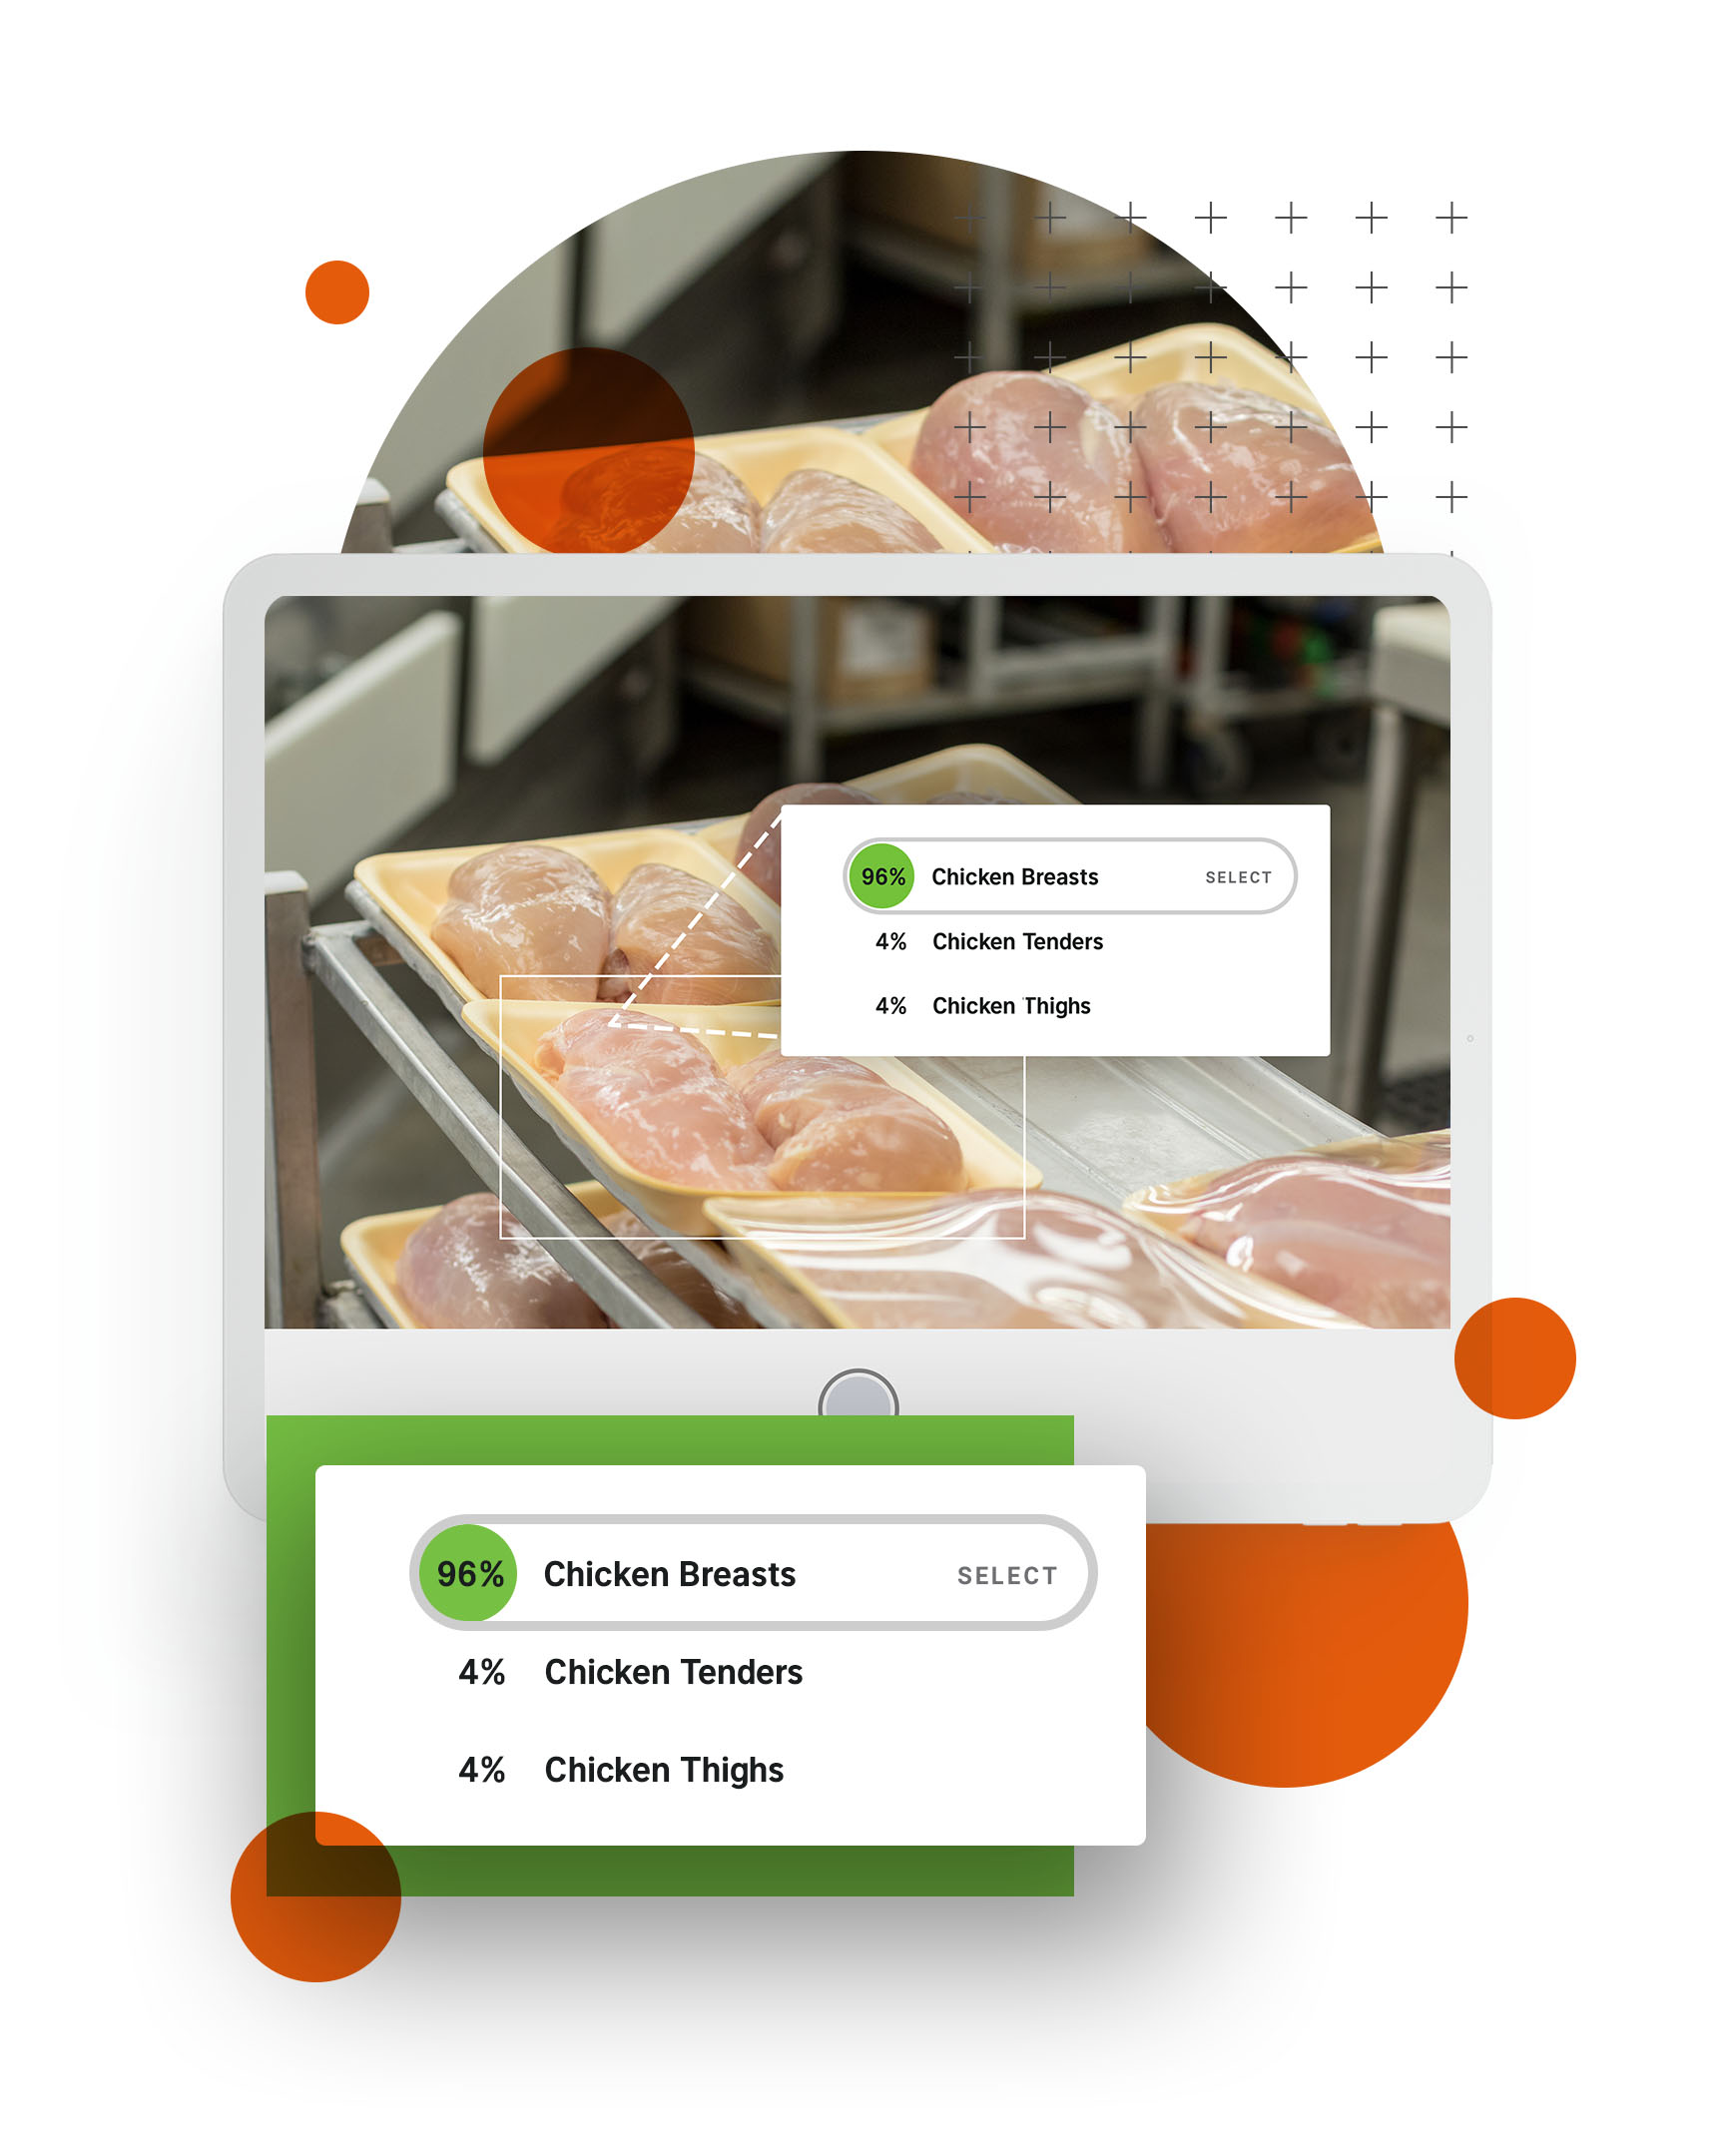 Tablet showing chicken package identification interface